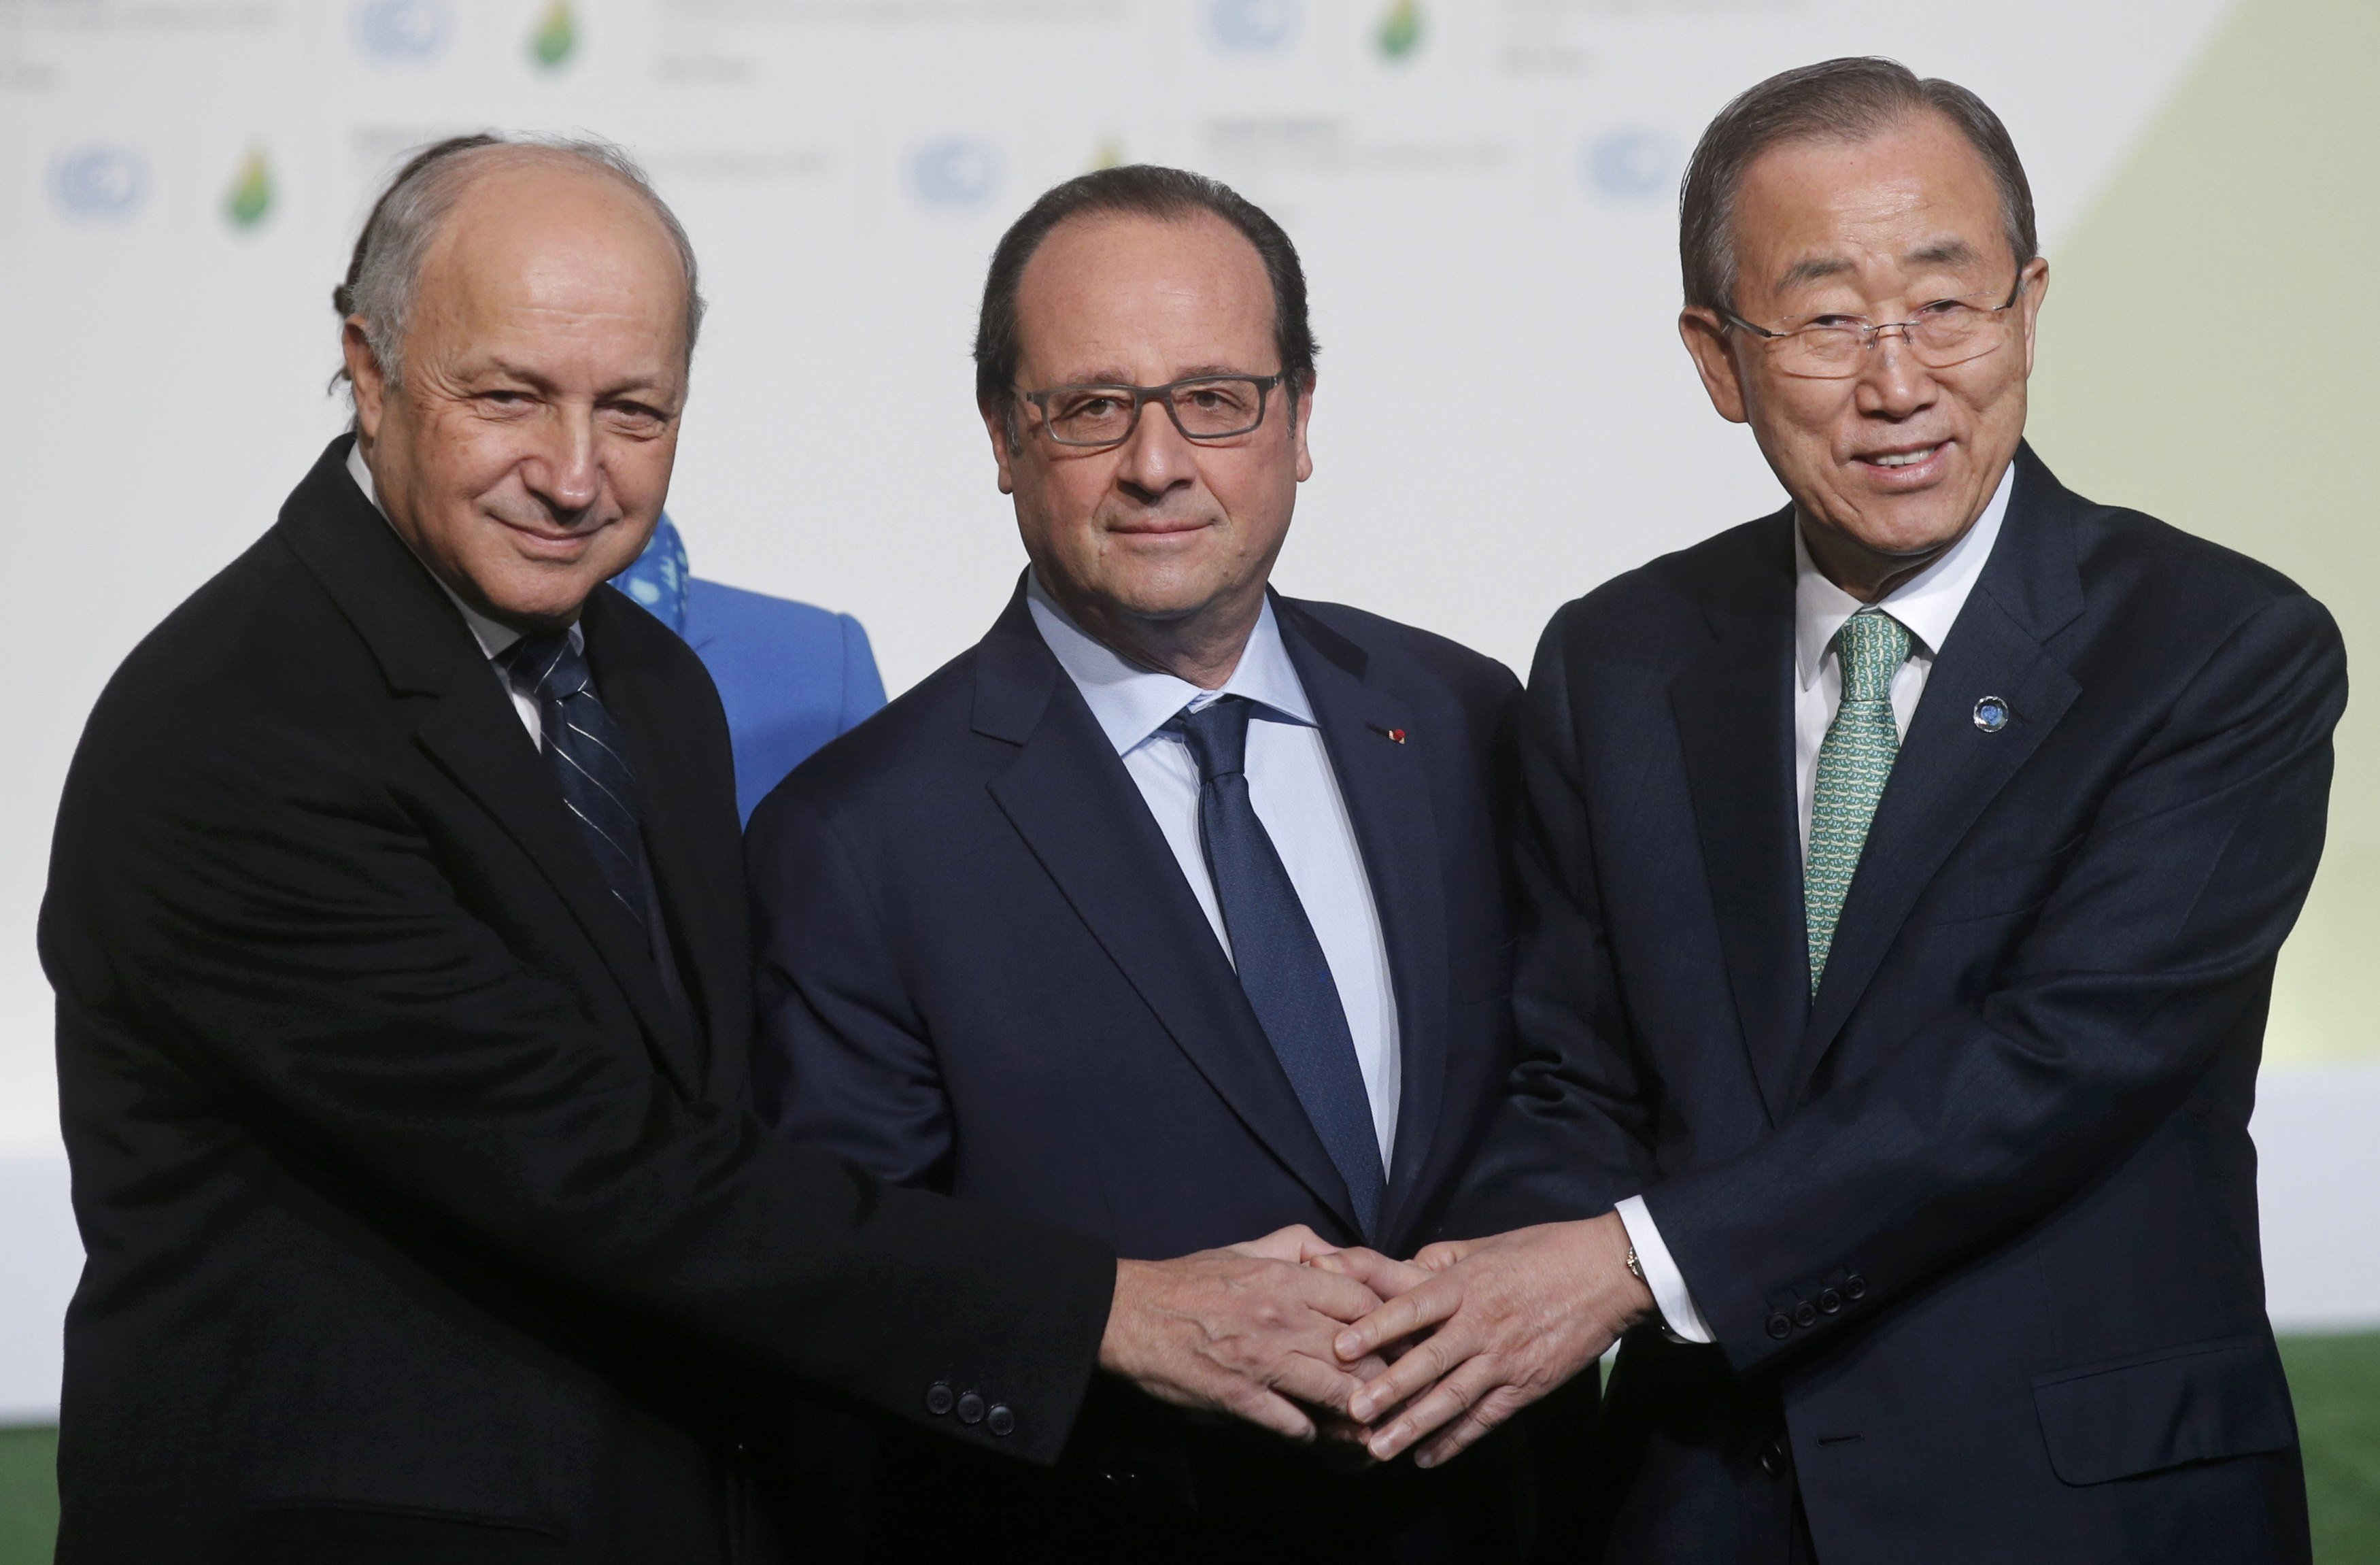 François Hollande et Laurent Fabius et Ban Ki-moon, COP21, Le Bourget, France, Nov. 30, 2015.